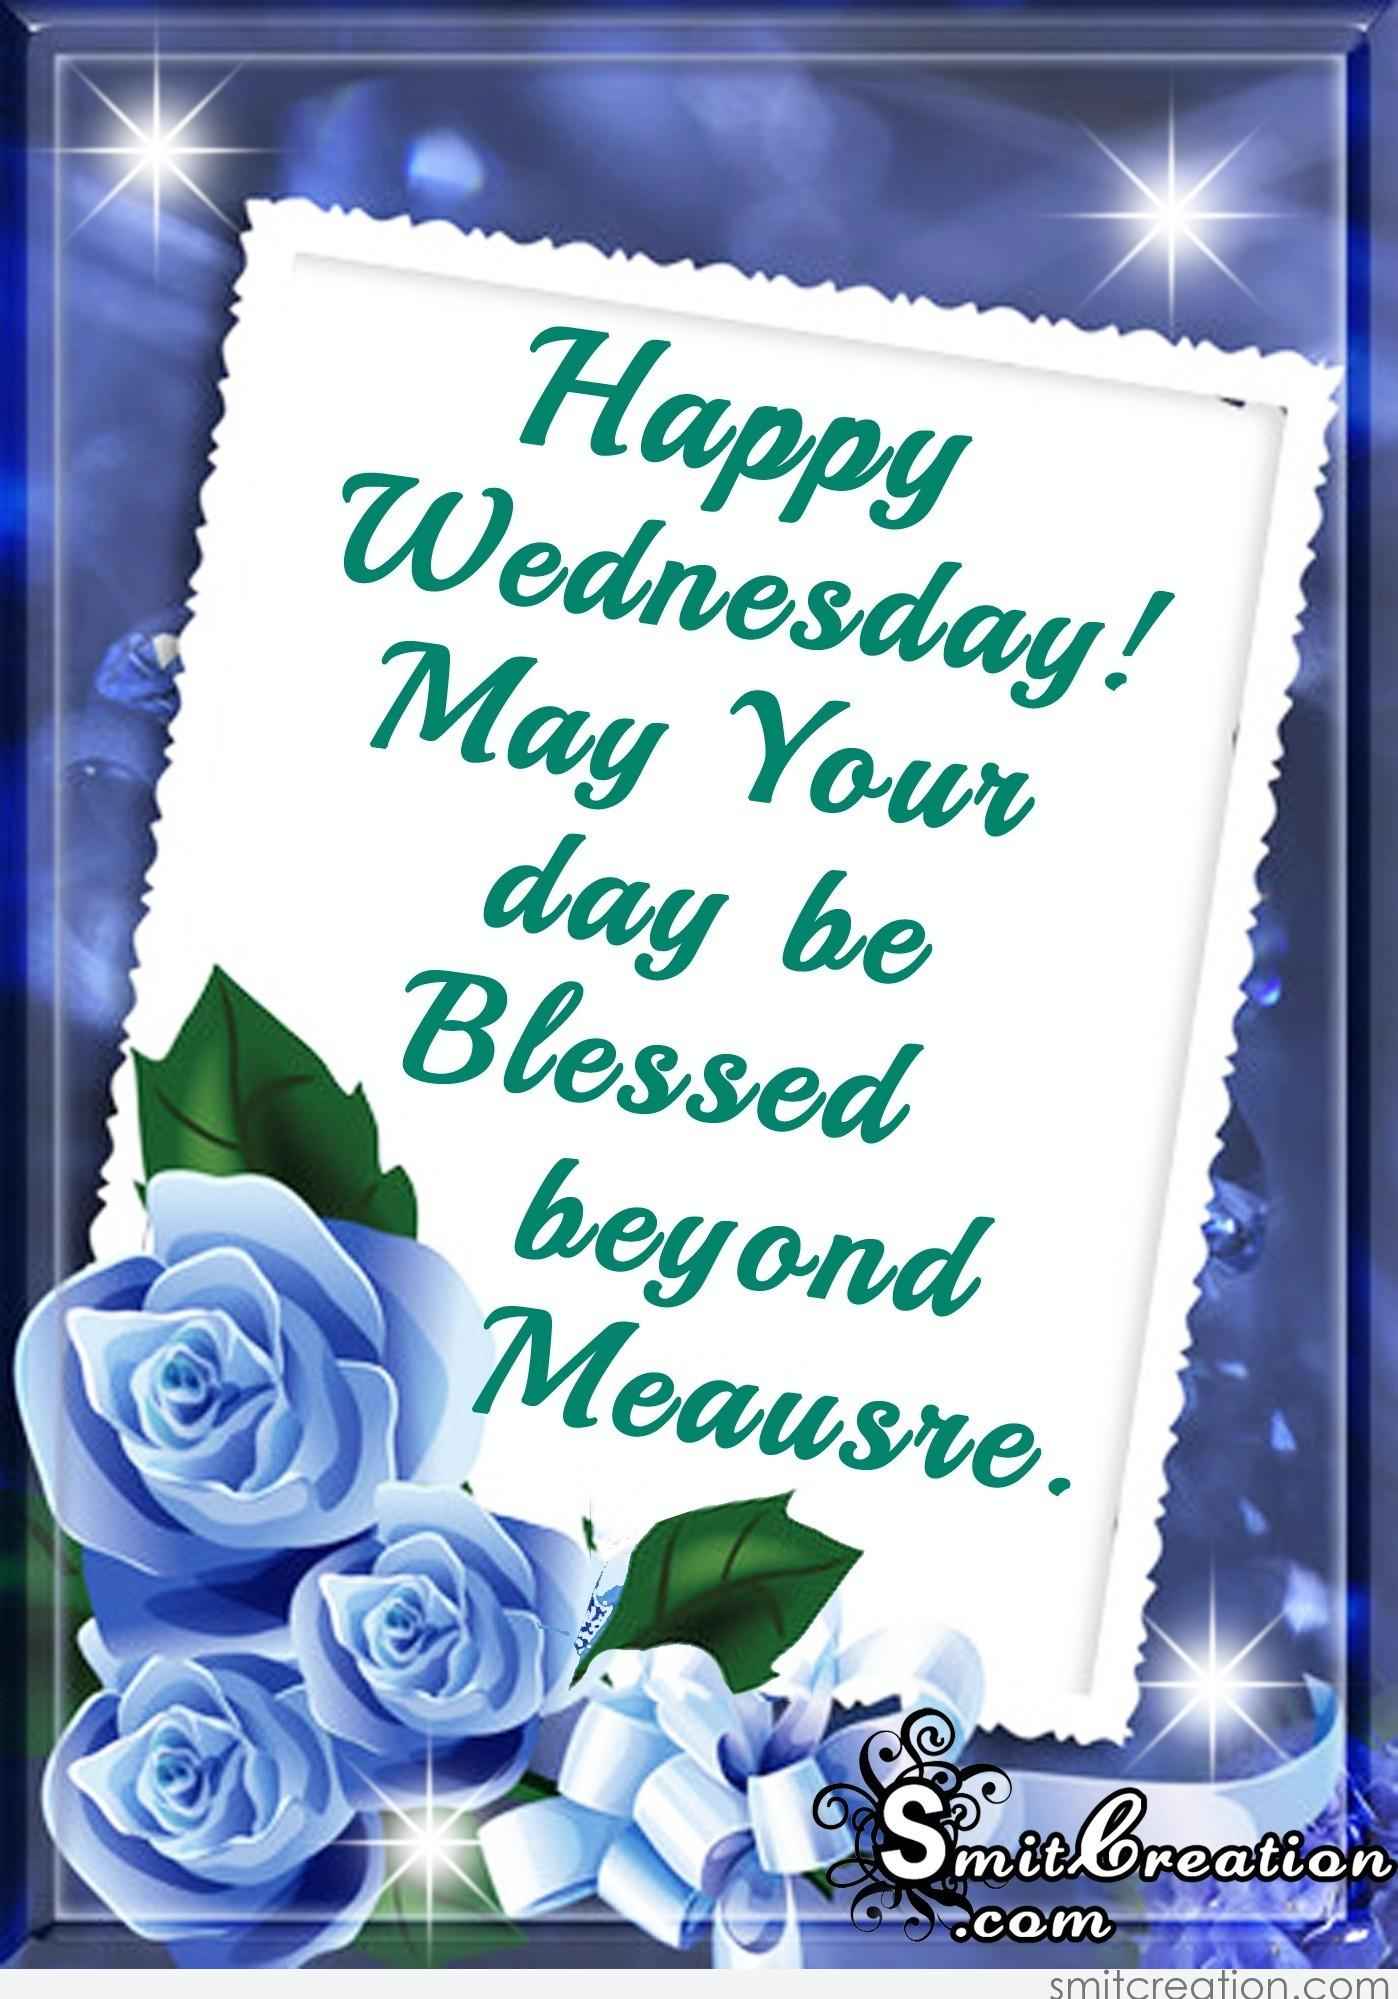 Happy Wednesday May Your Day Be Blessed Beyond Meausre